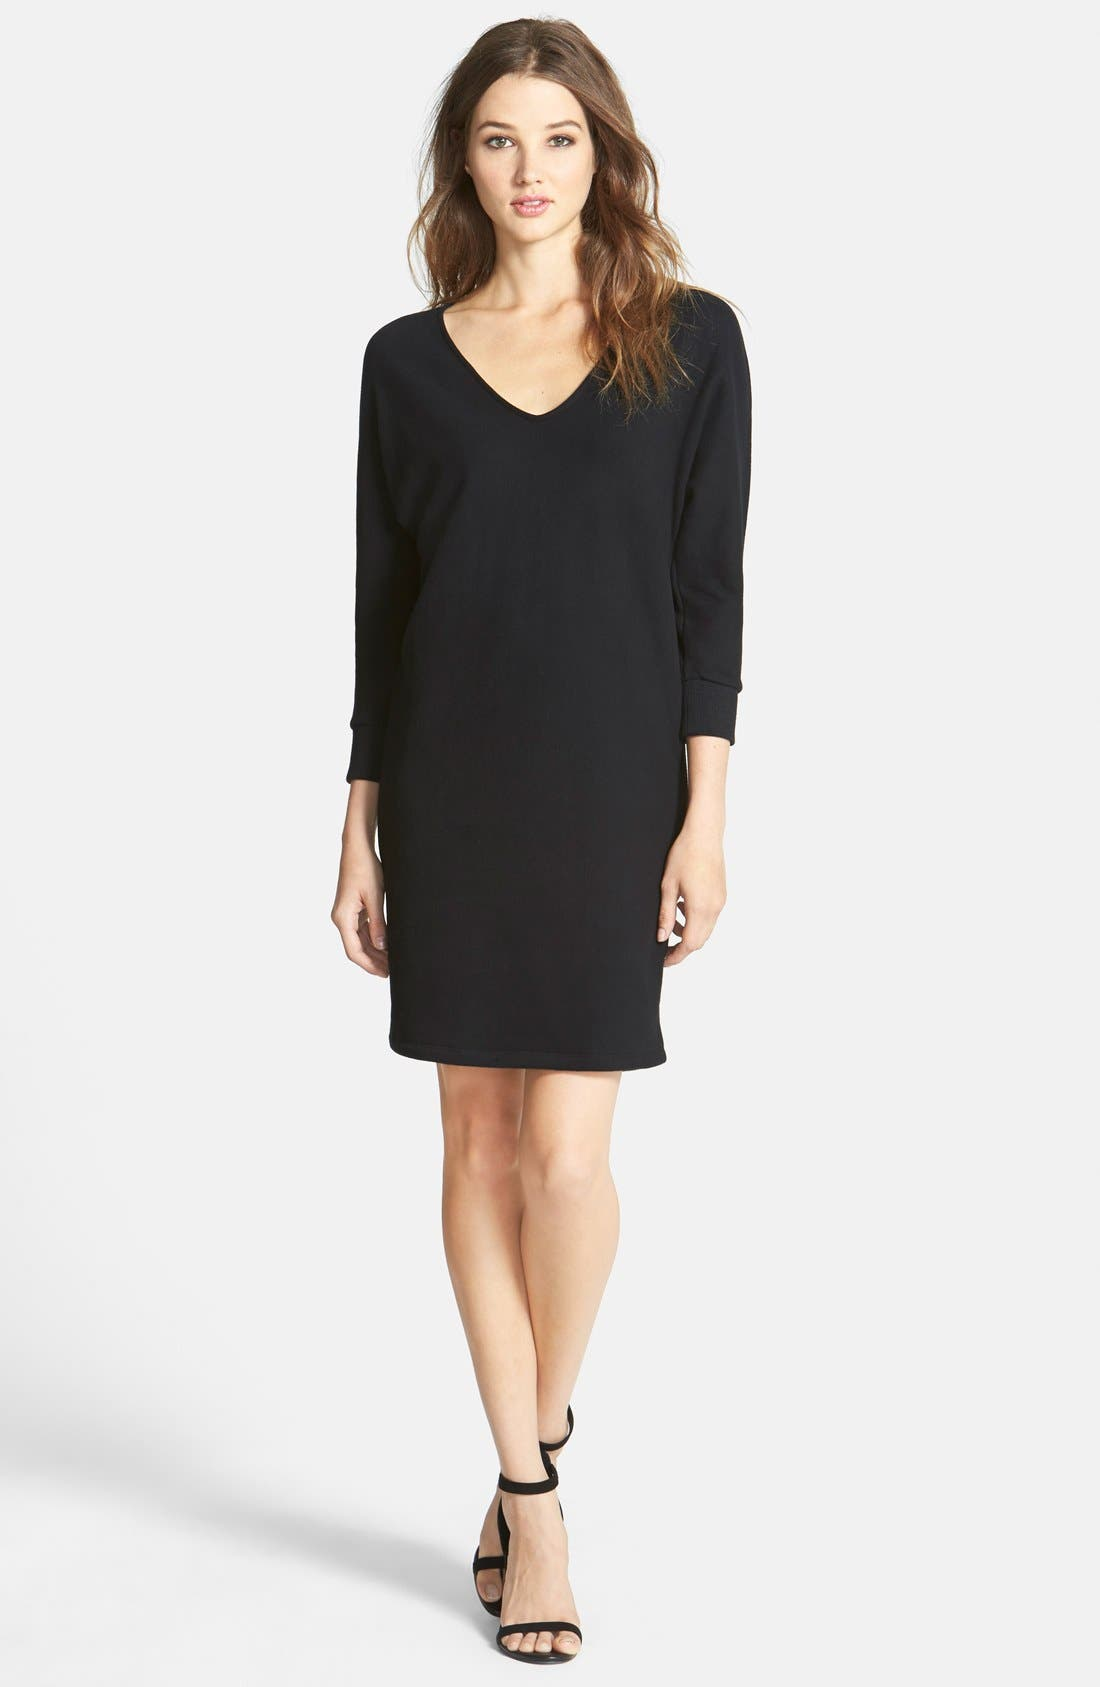 Alternate Image 1 Selected - James Perse Brushed Fleece Dress